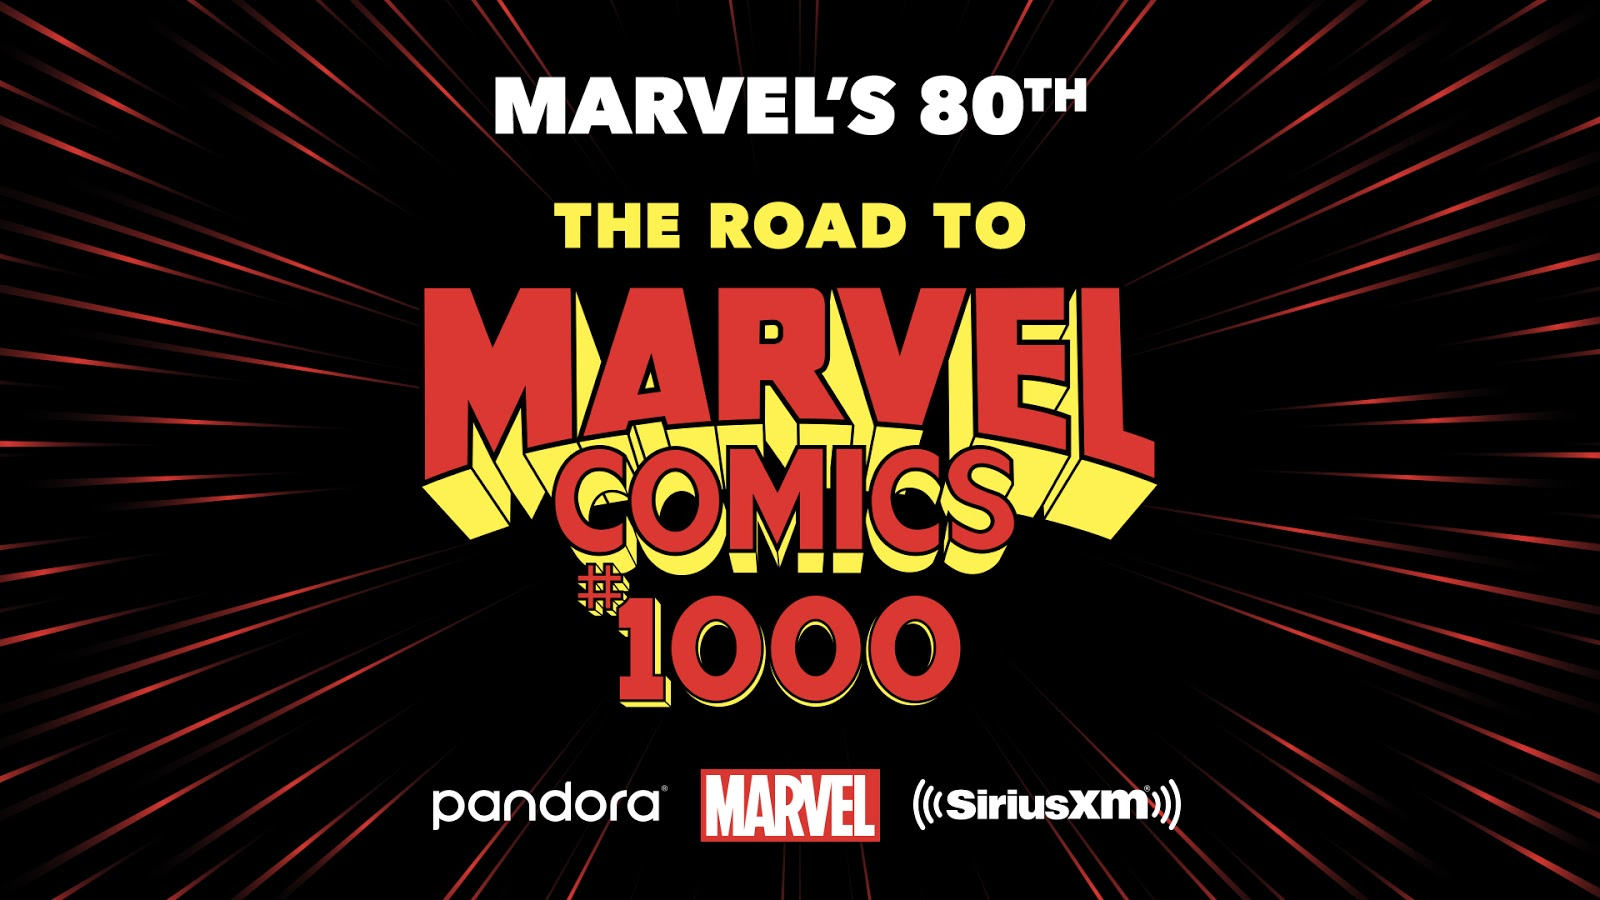 Sirius Xm Christmas Station.Marvel And Sirius Xm To Launch Marvel S 80th The Road To